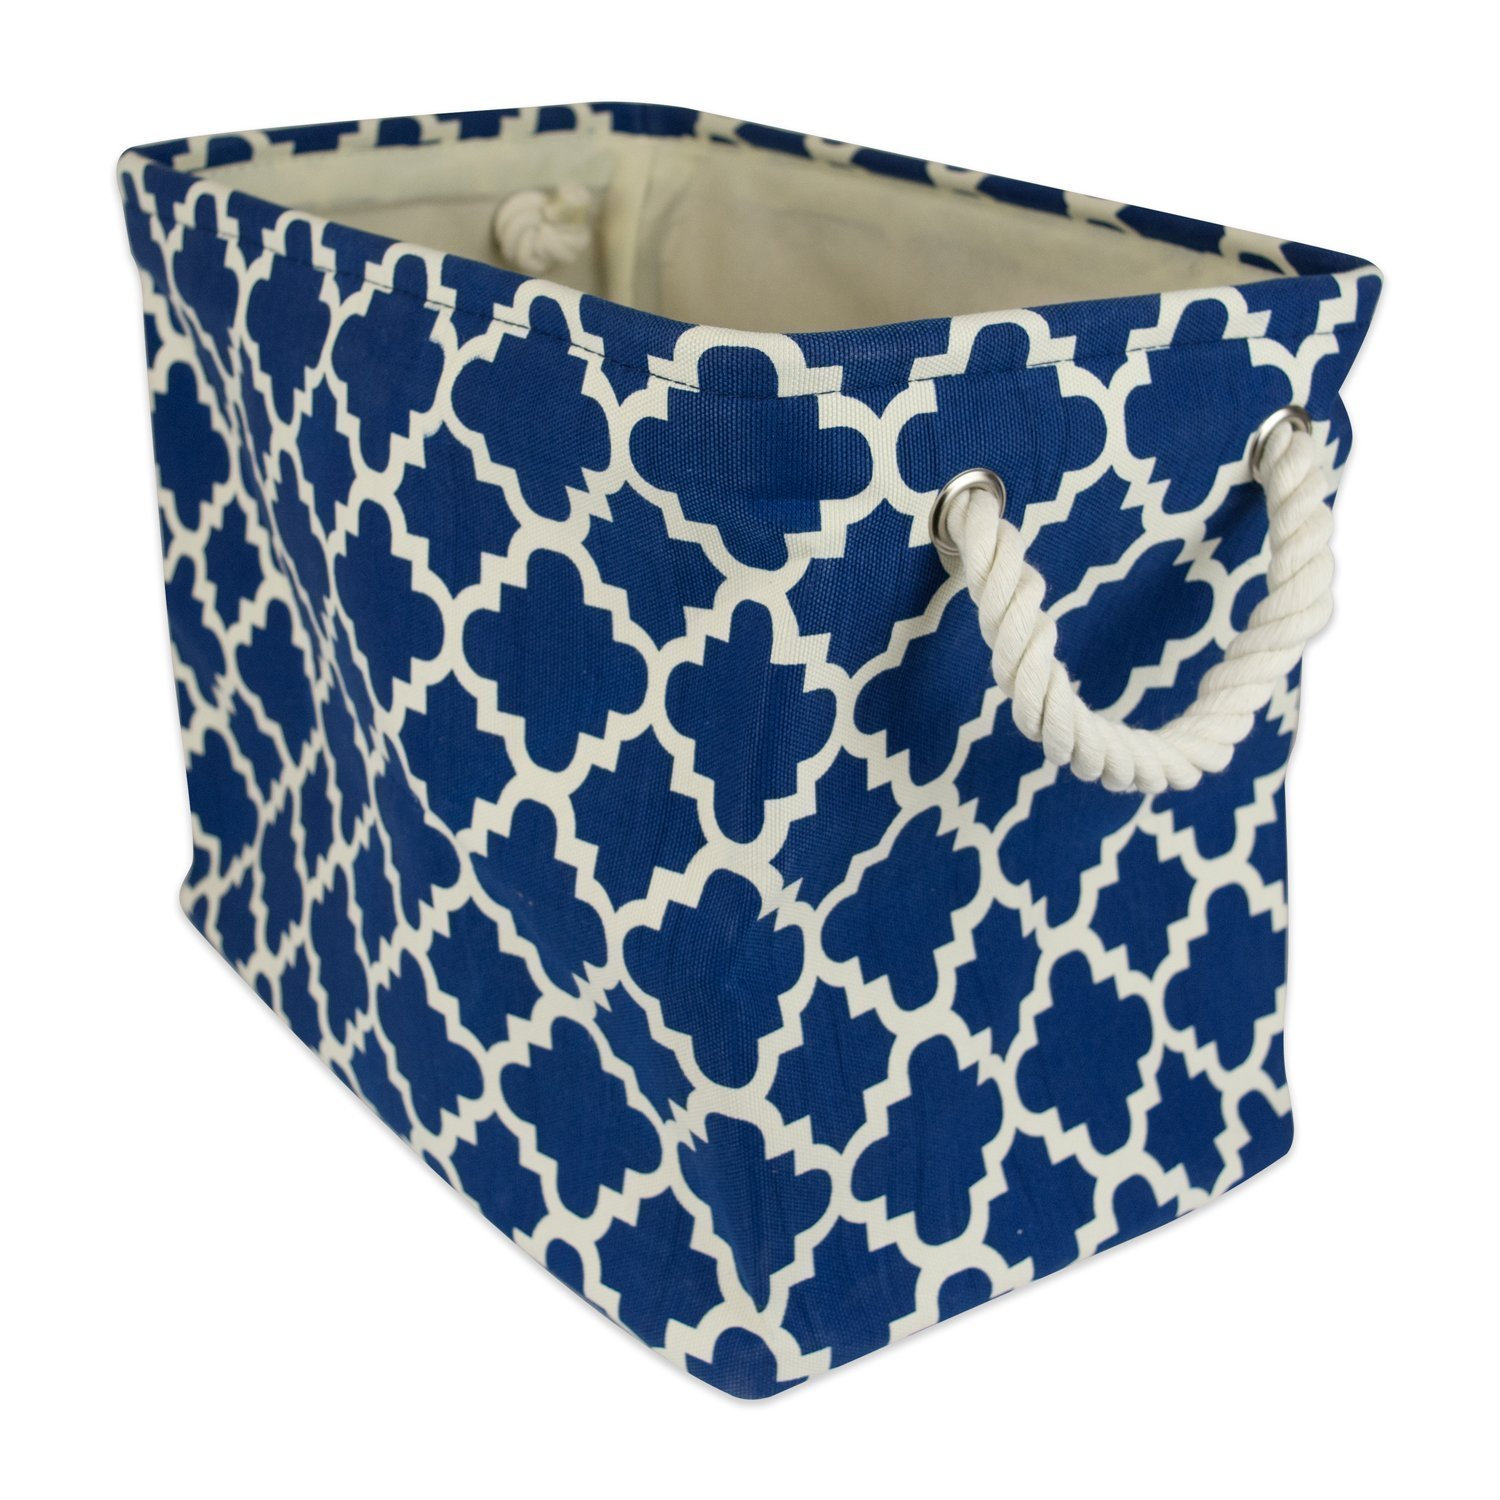 """DII Collapsible Polyester Storage Basket or Bin with Durable Cotton Handles, Home Organizer Solution for Office, Bedroom, Closet, Toys, Laundry (Small – 14x8x9""""), Navy Lattice by DII"""